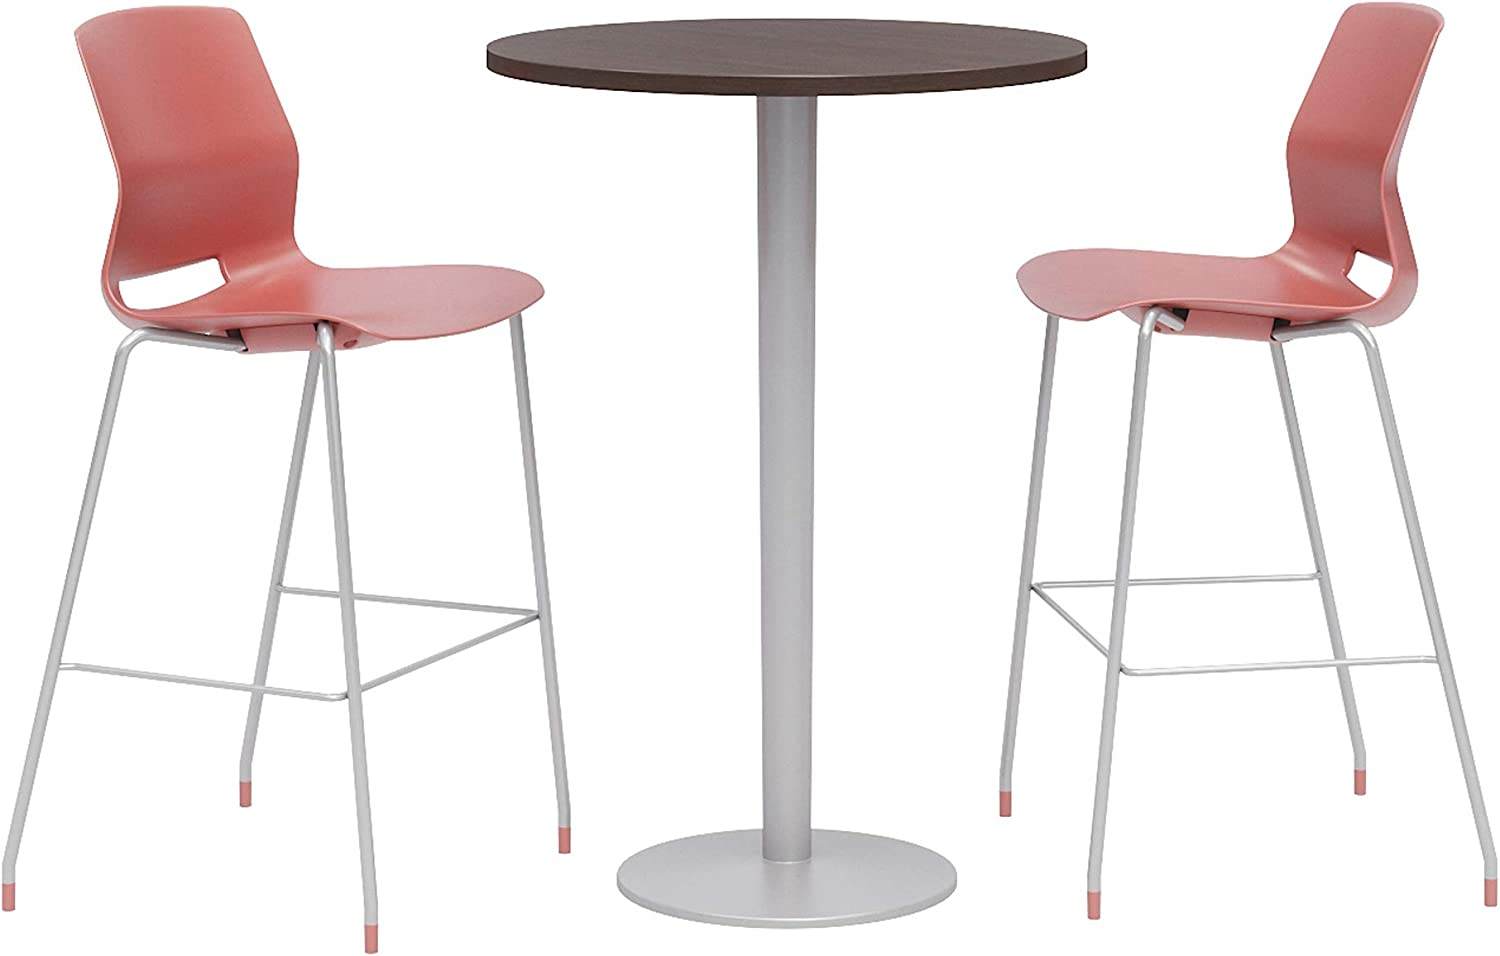 Olio Designs Dining Room Furniture, Espresso Table, Coral Stools